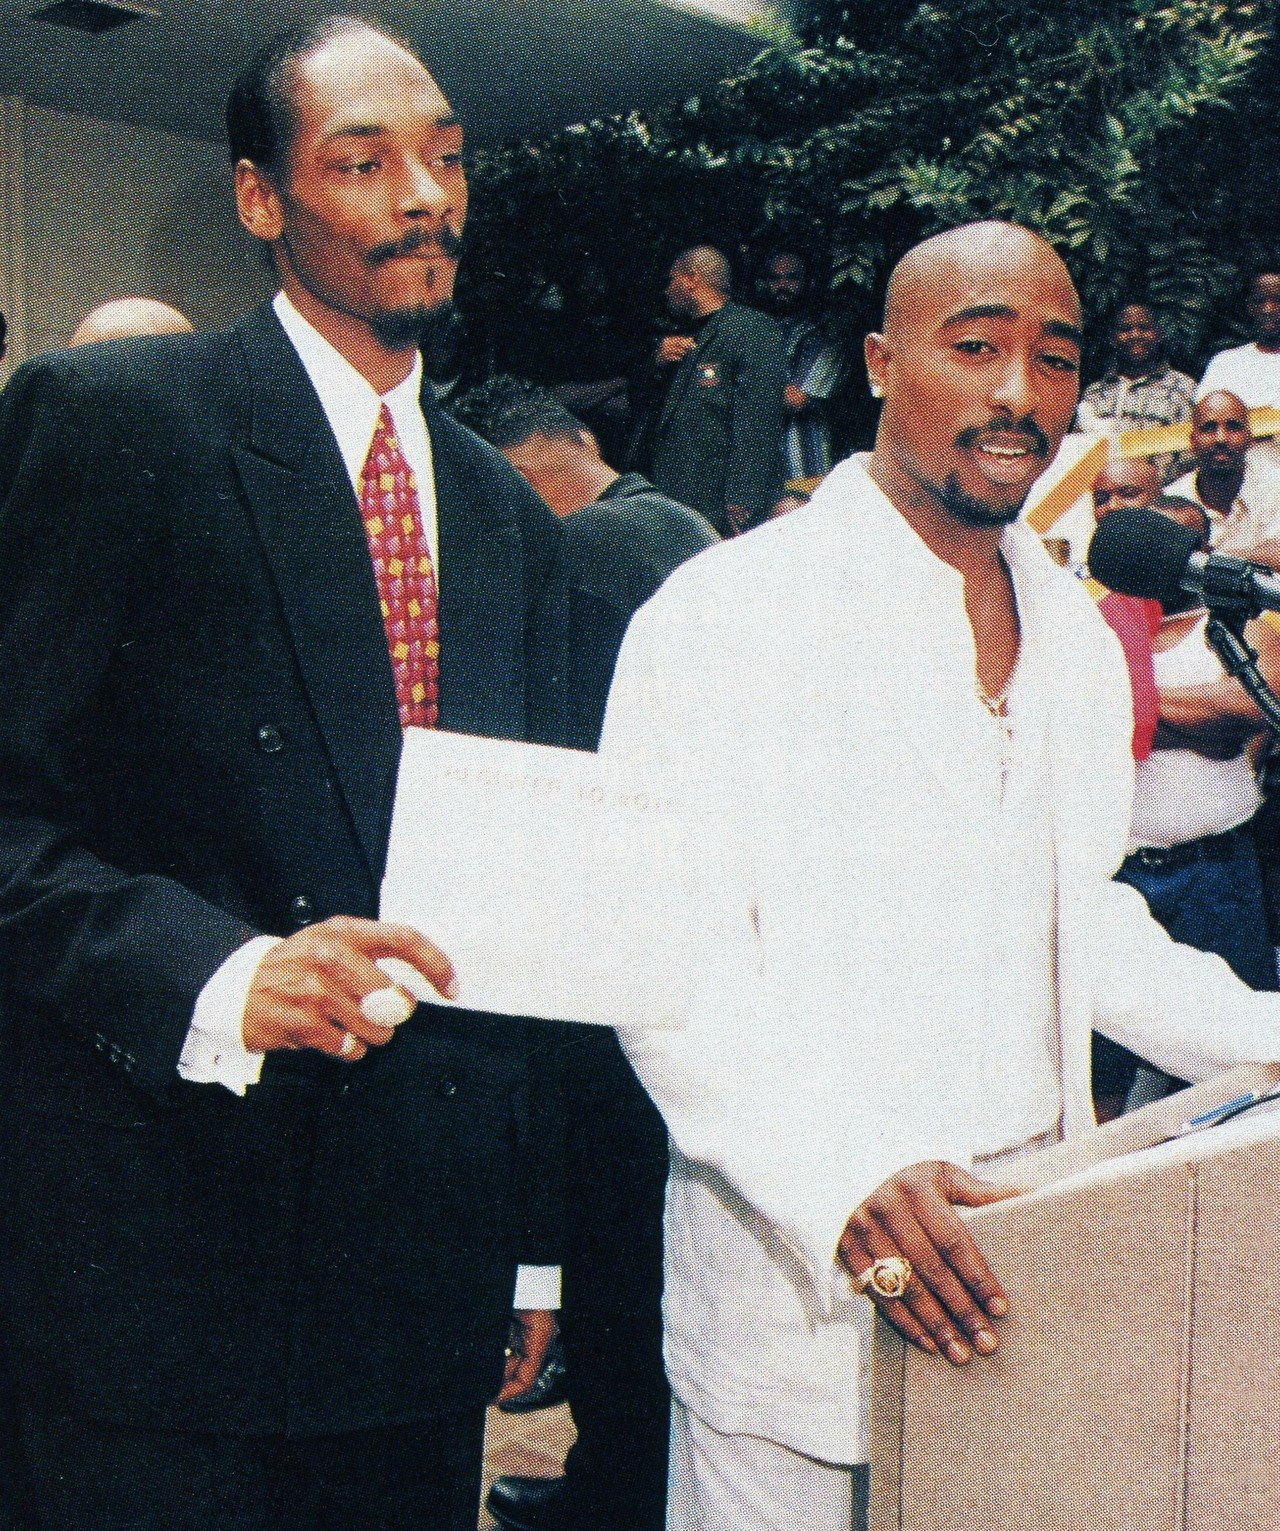 vivalatupac :     15 Aug 1996 with Snoop Dogg at the Brotherhood Crusade Rally photographed by Bill Jones